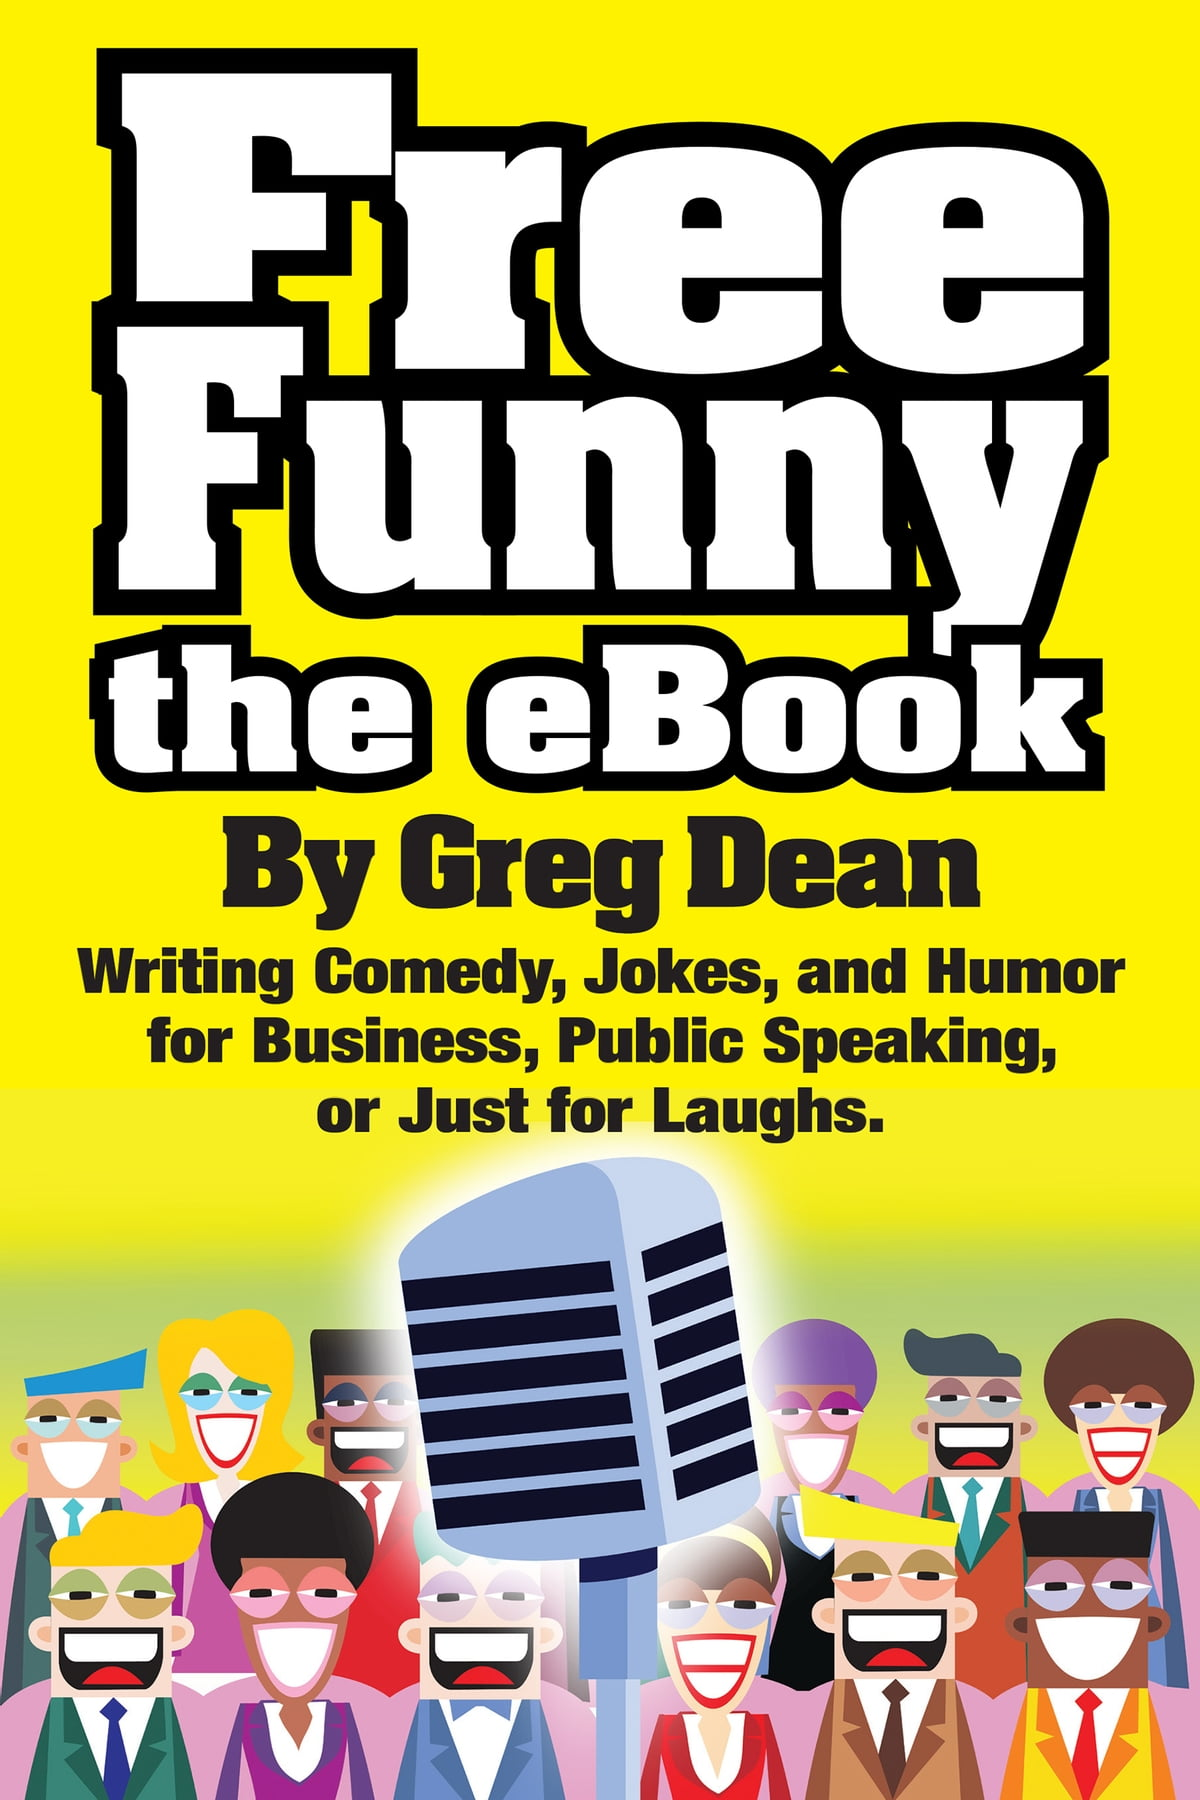 Free Funny The Ebook Writing Comedy Jokes And Humor For Business Public Speaking Or Just For Laughs Ebook By Greg Dean 9780989735155 Rakuten Kobo United States